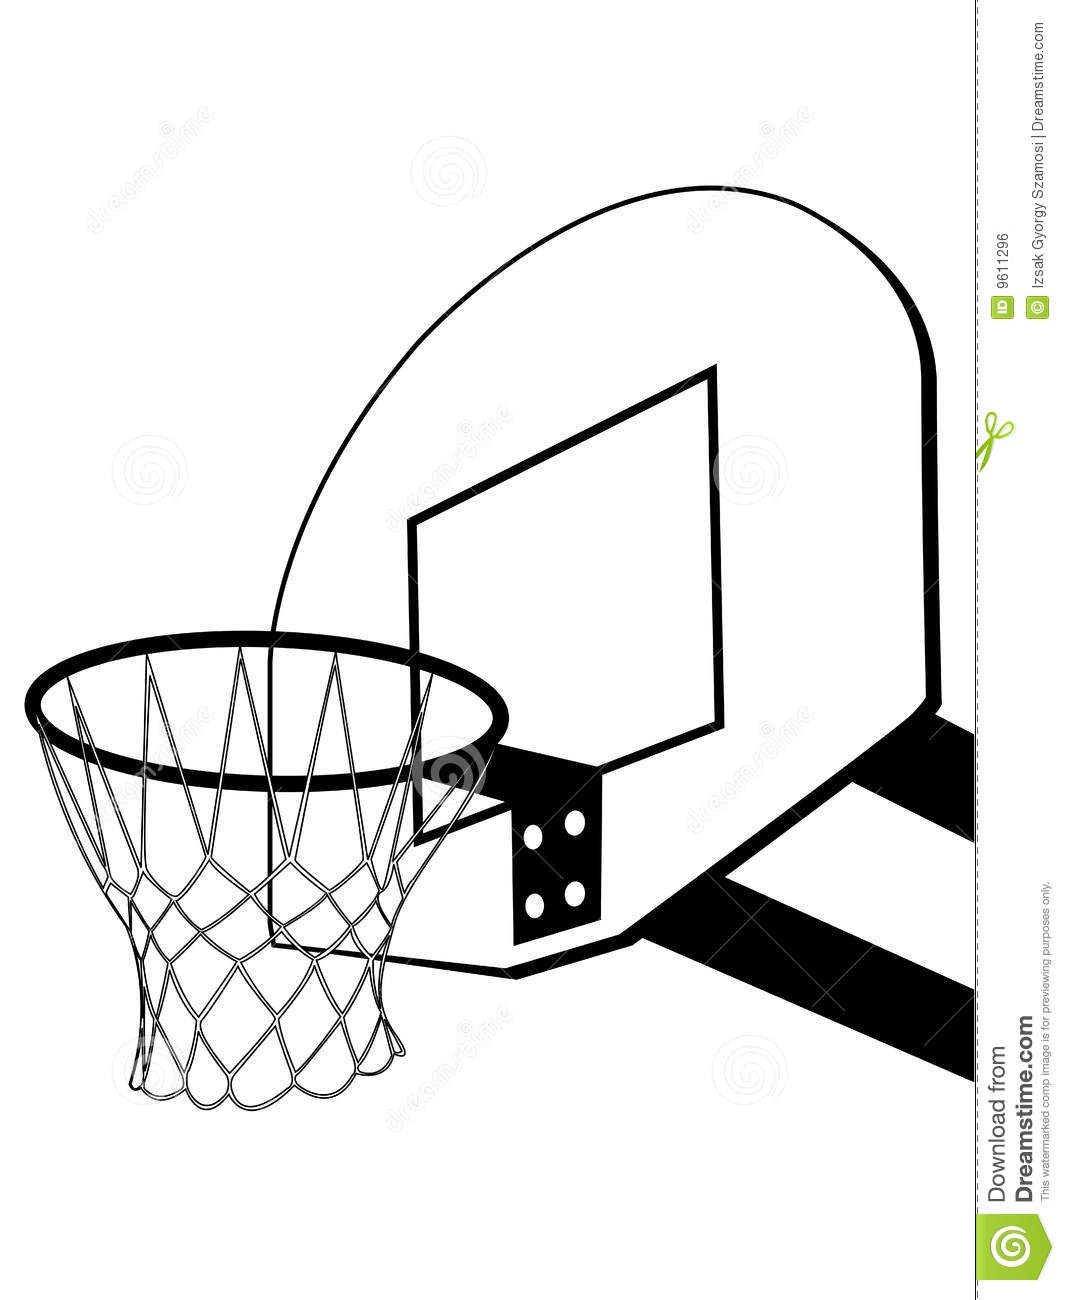 1065x1300 Basketball Hoop Side View Clipart